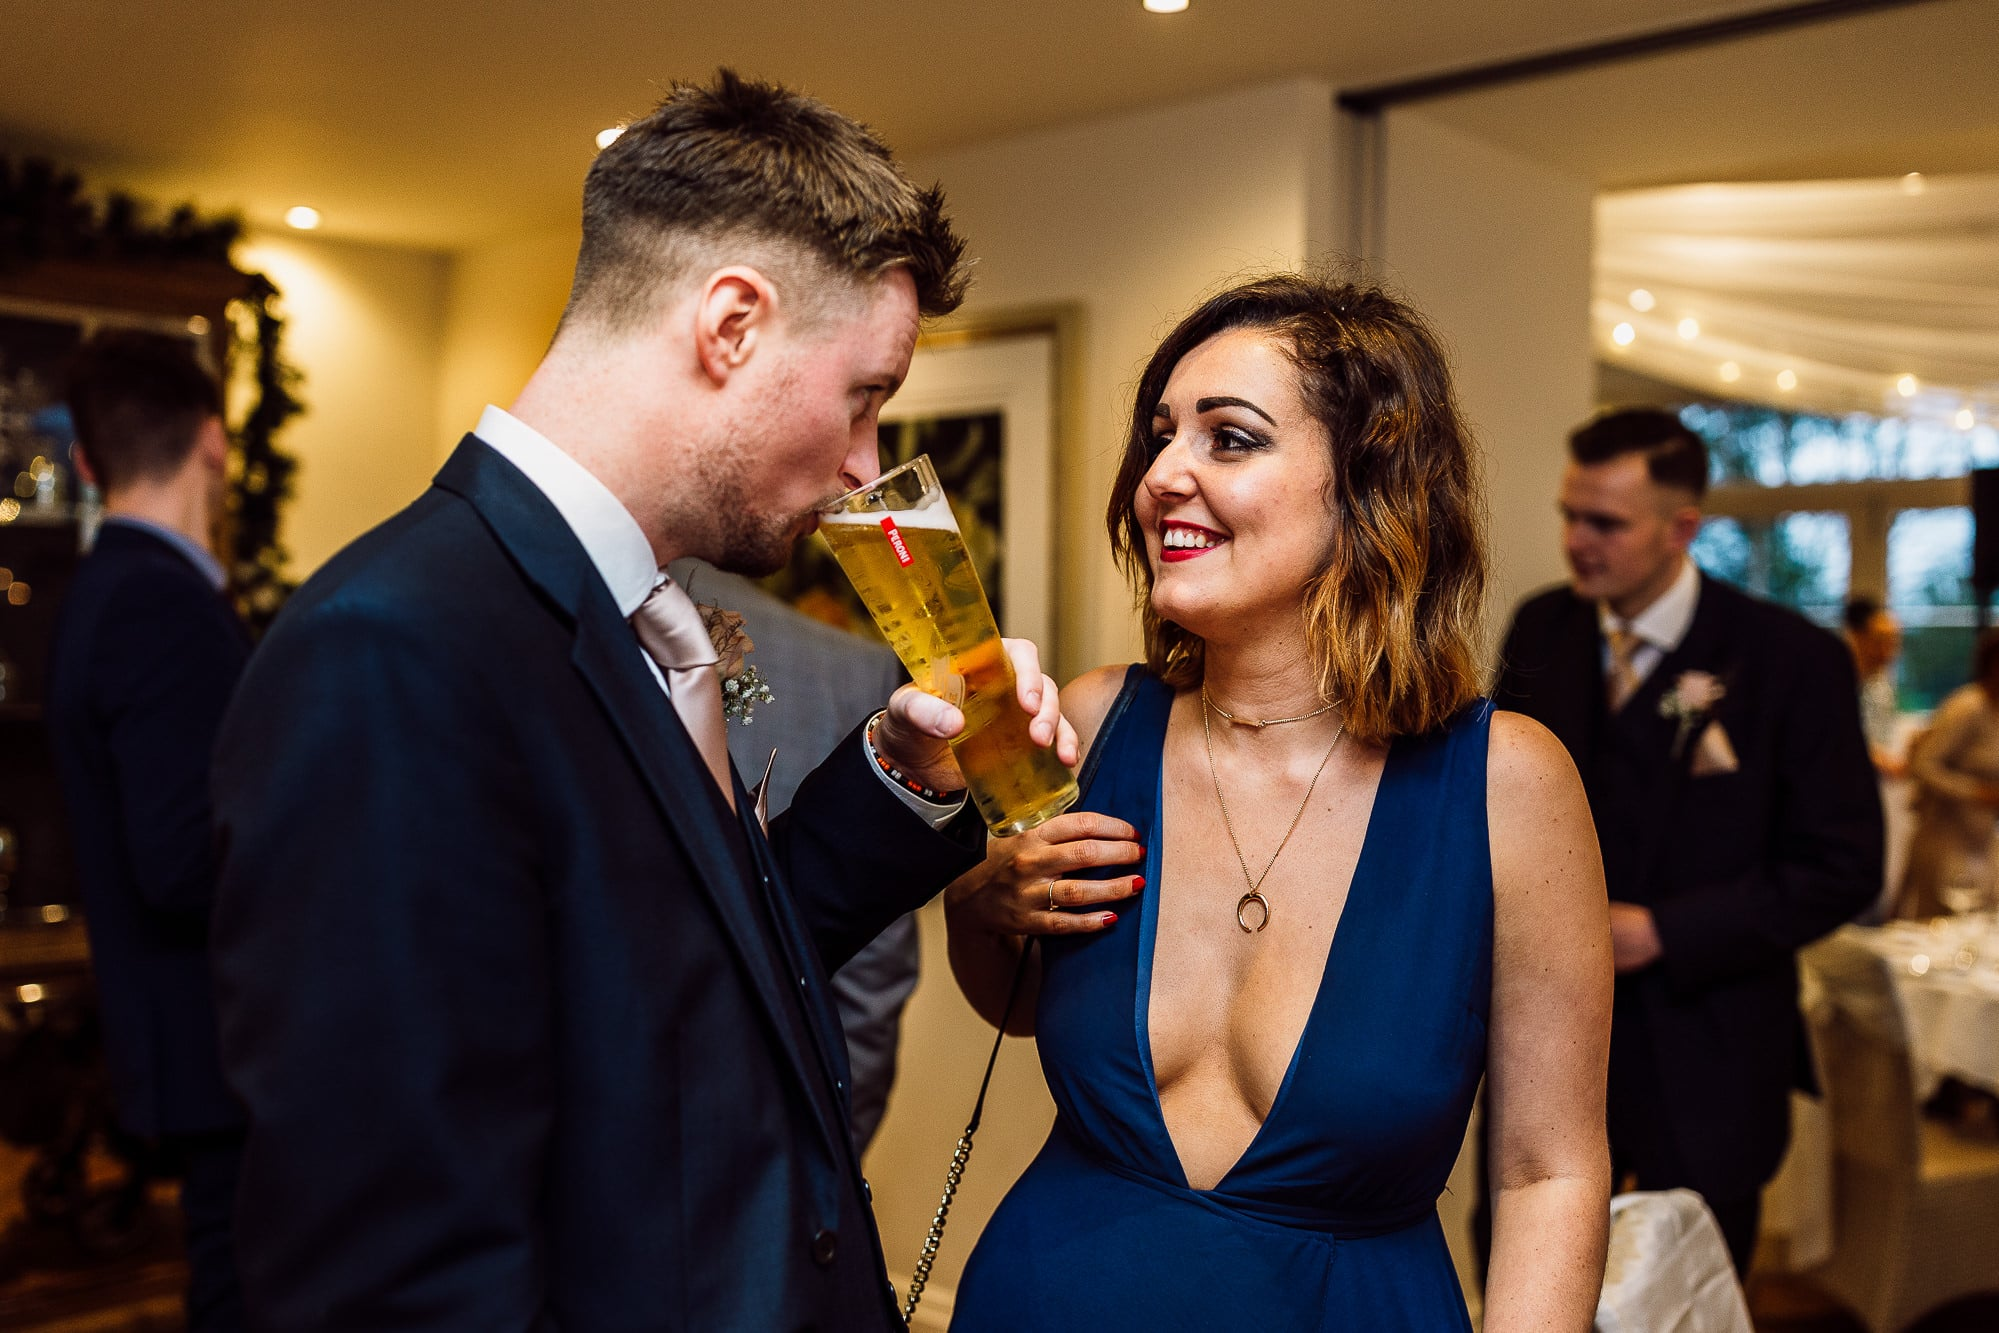 Guests talking during reception drinks